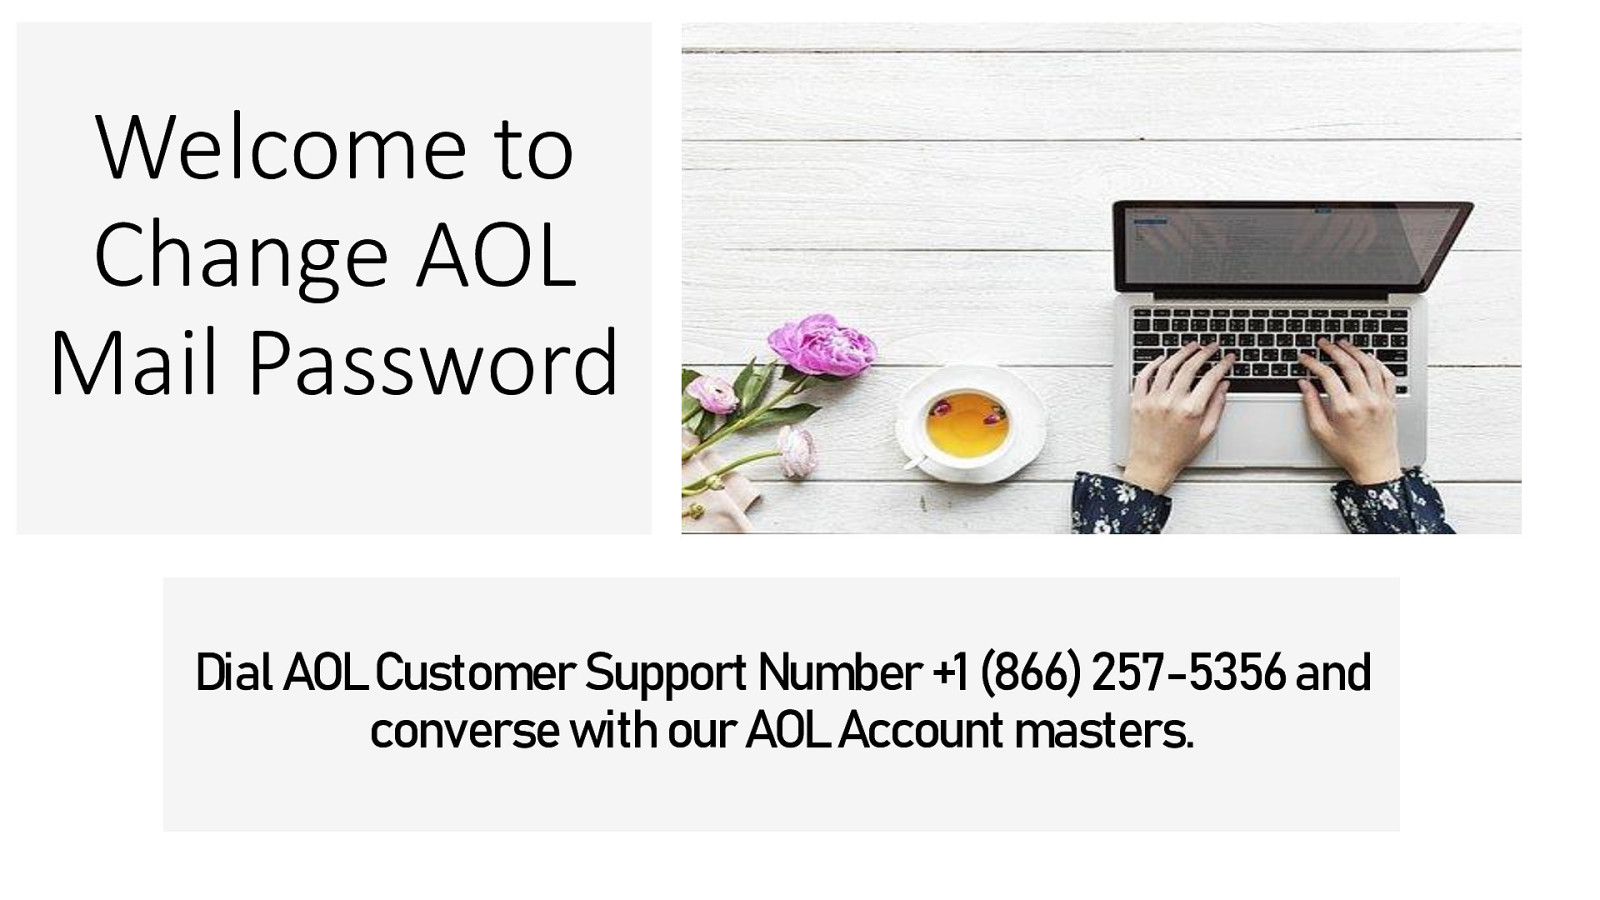 Change AOL Mail Password |Dial +1(866) 257-5356